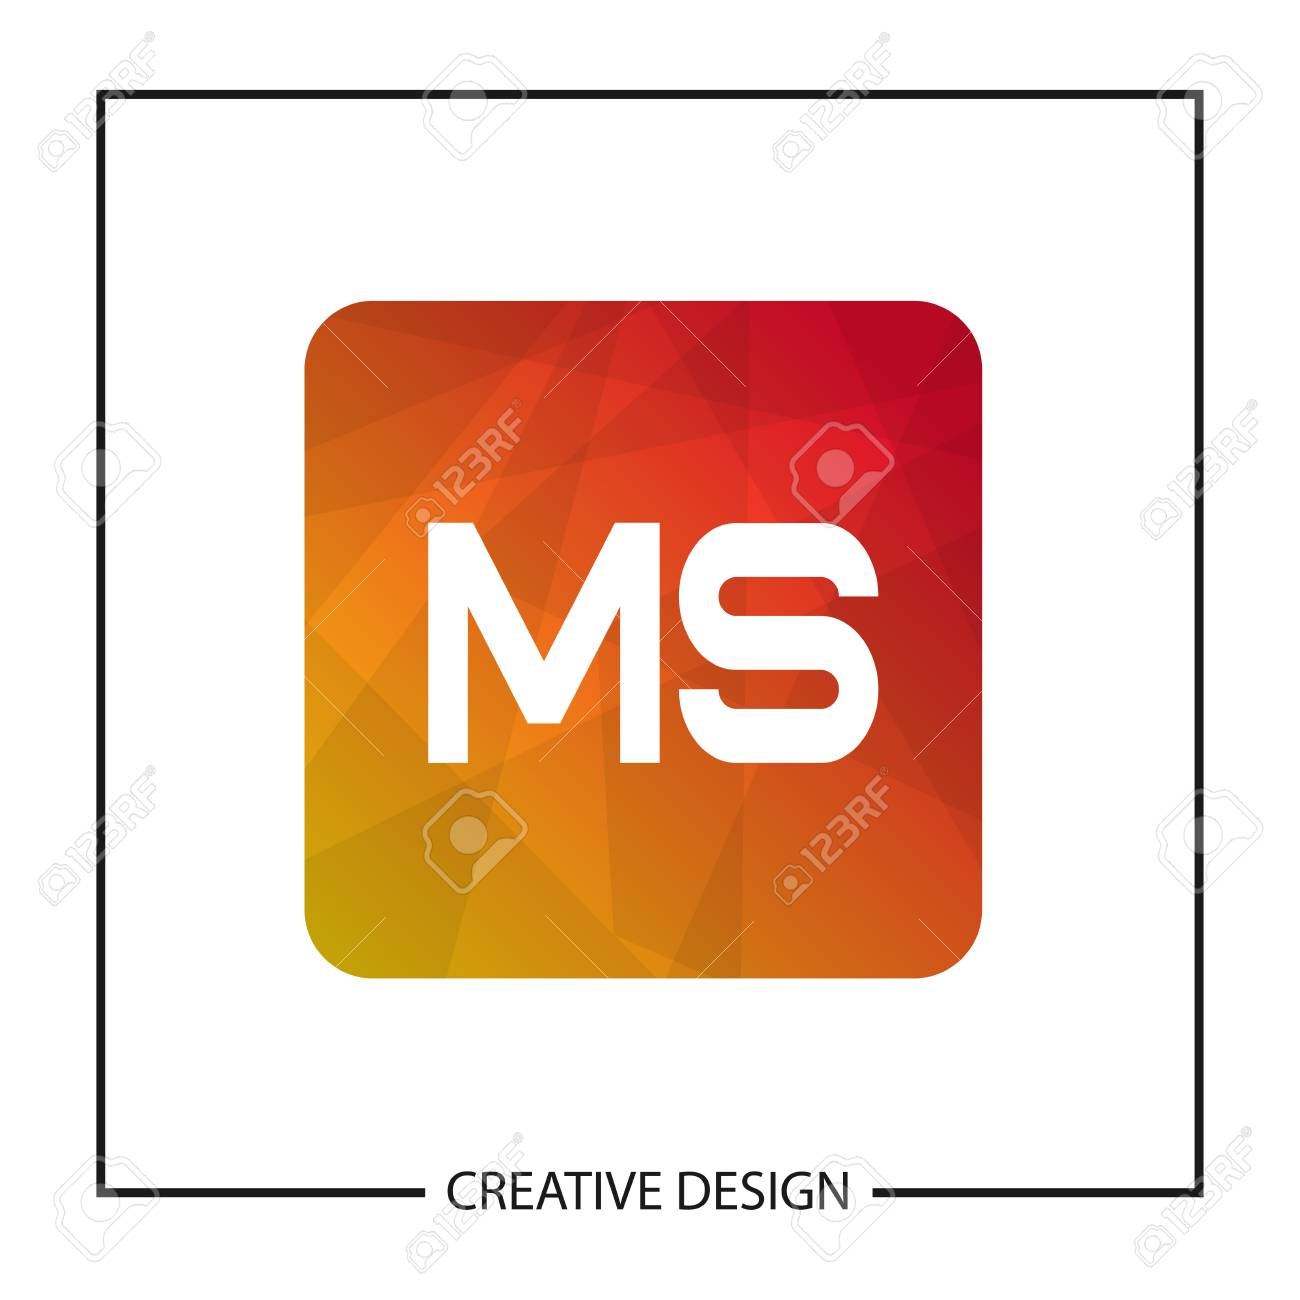 Initial Letter Ms Logo Template Design Vector Illustration Royalty Free Cliparts Vectors And Stock Illustration Image 112997334